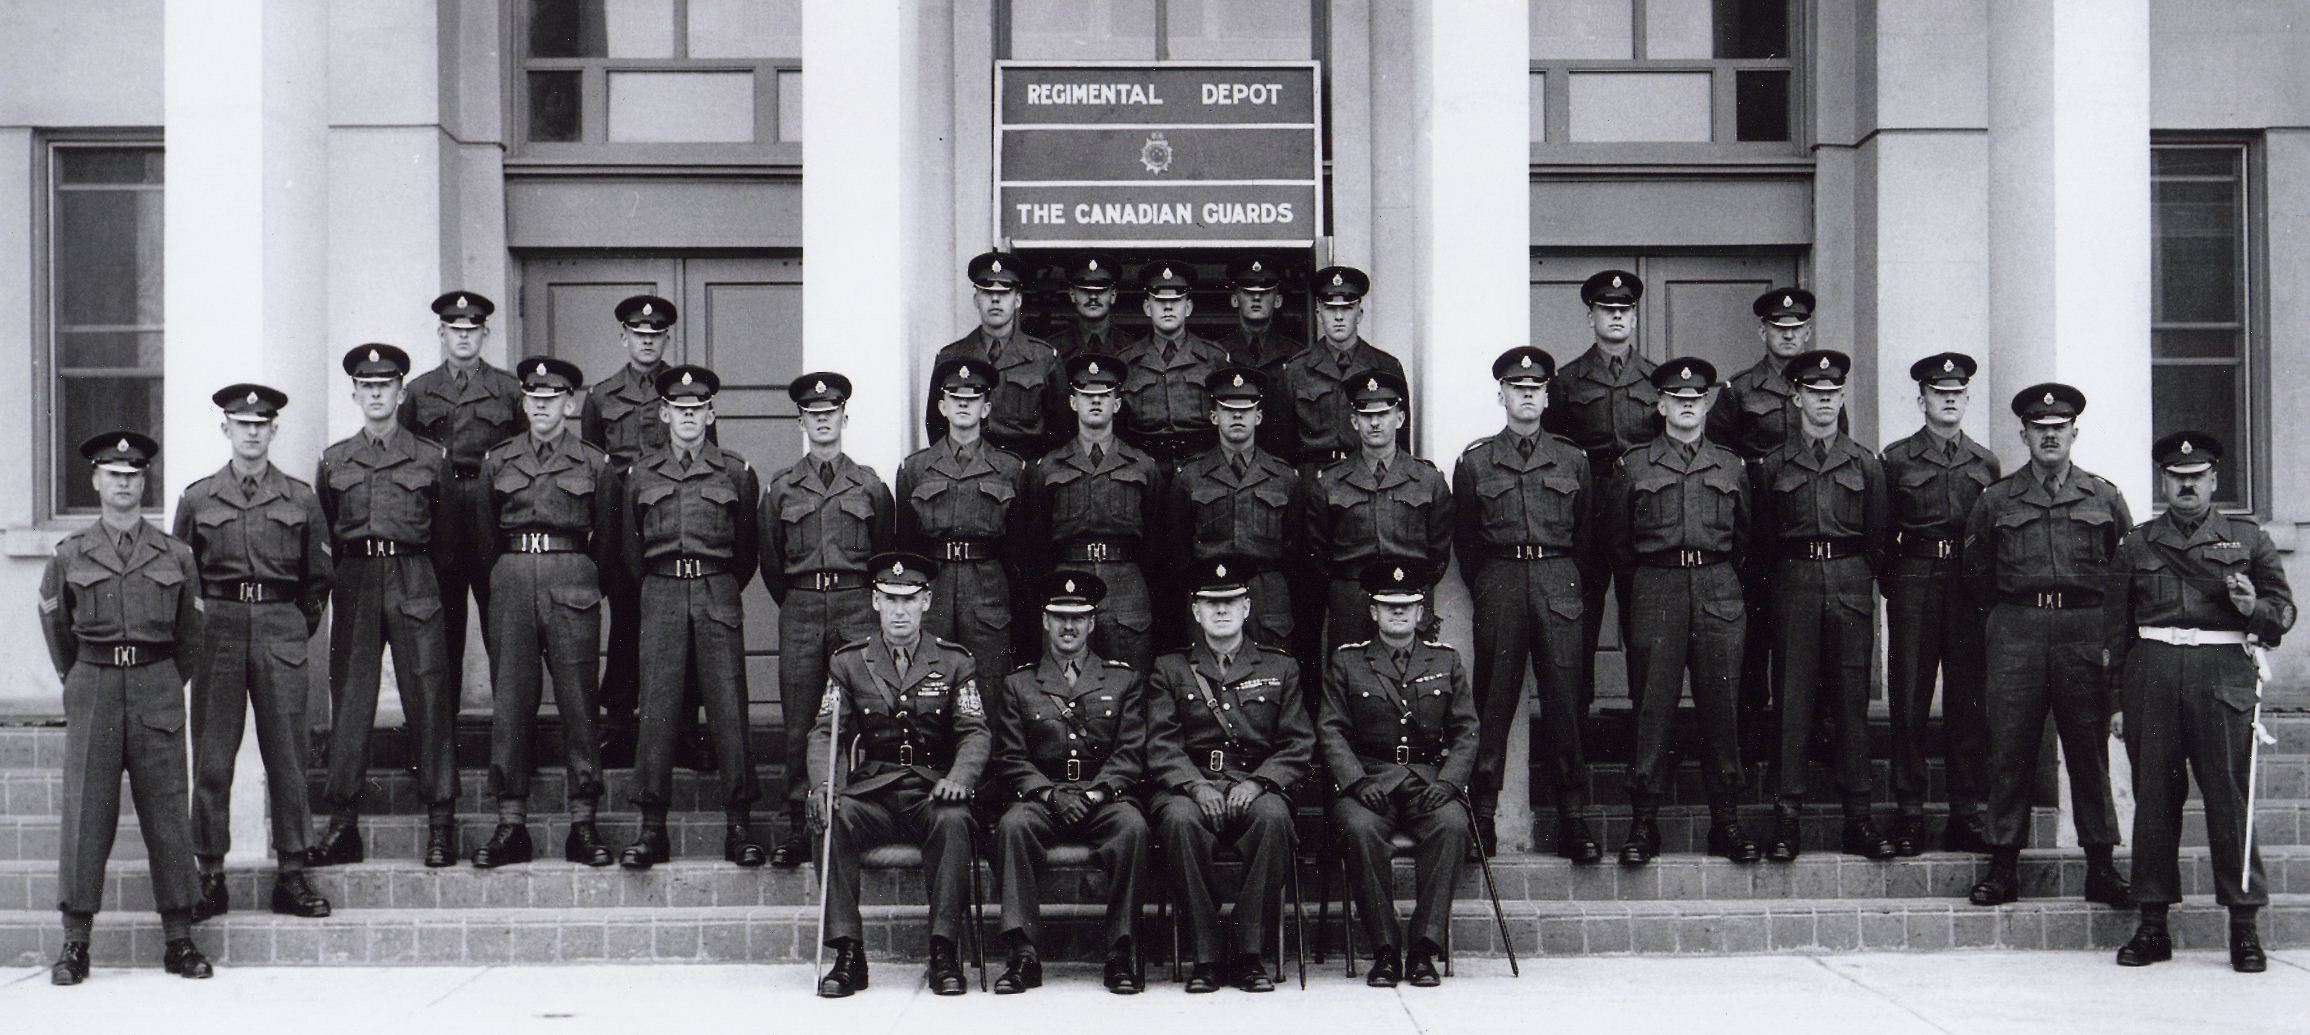 12_Cdn Guards Depot circa 1958